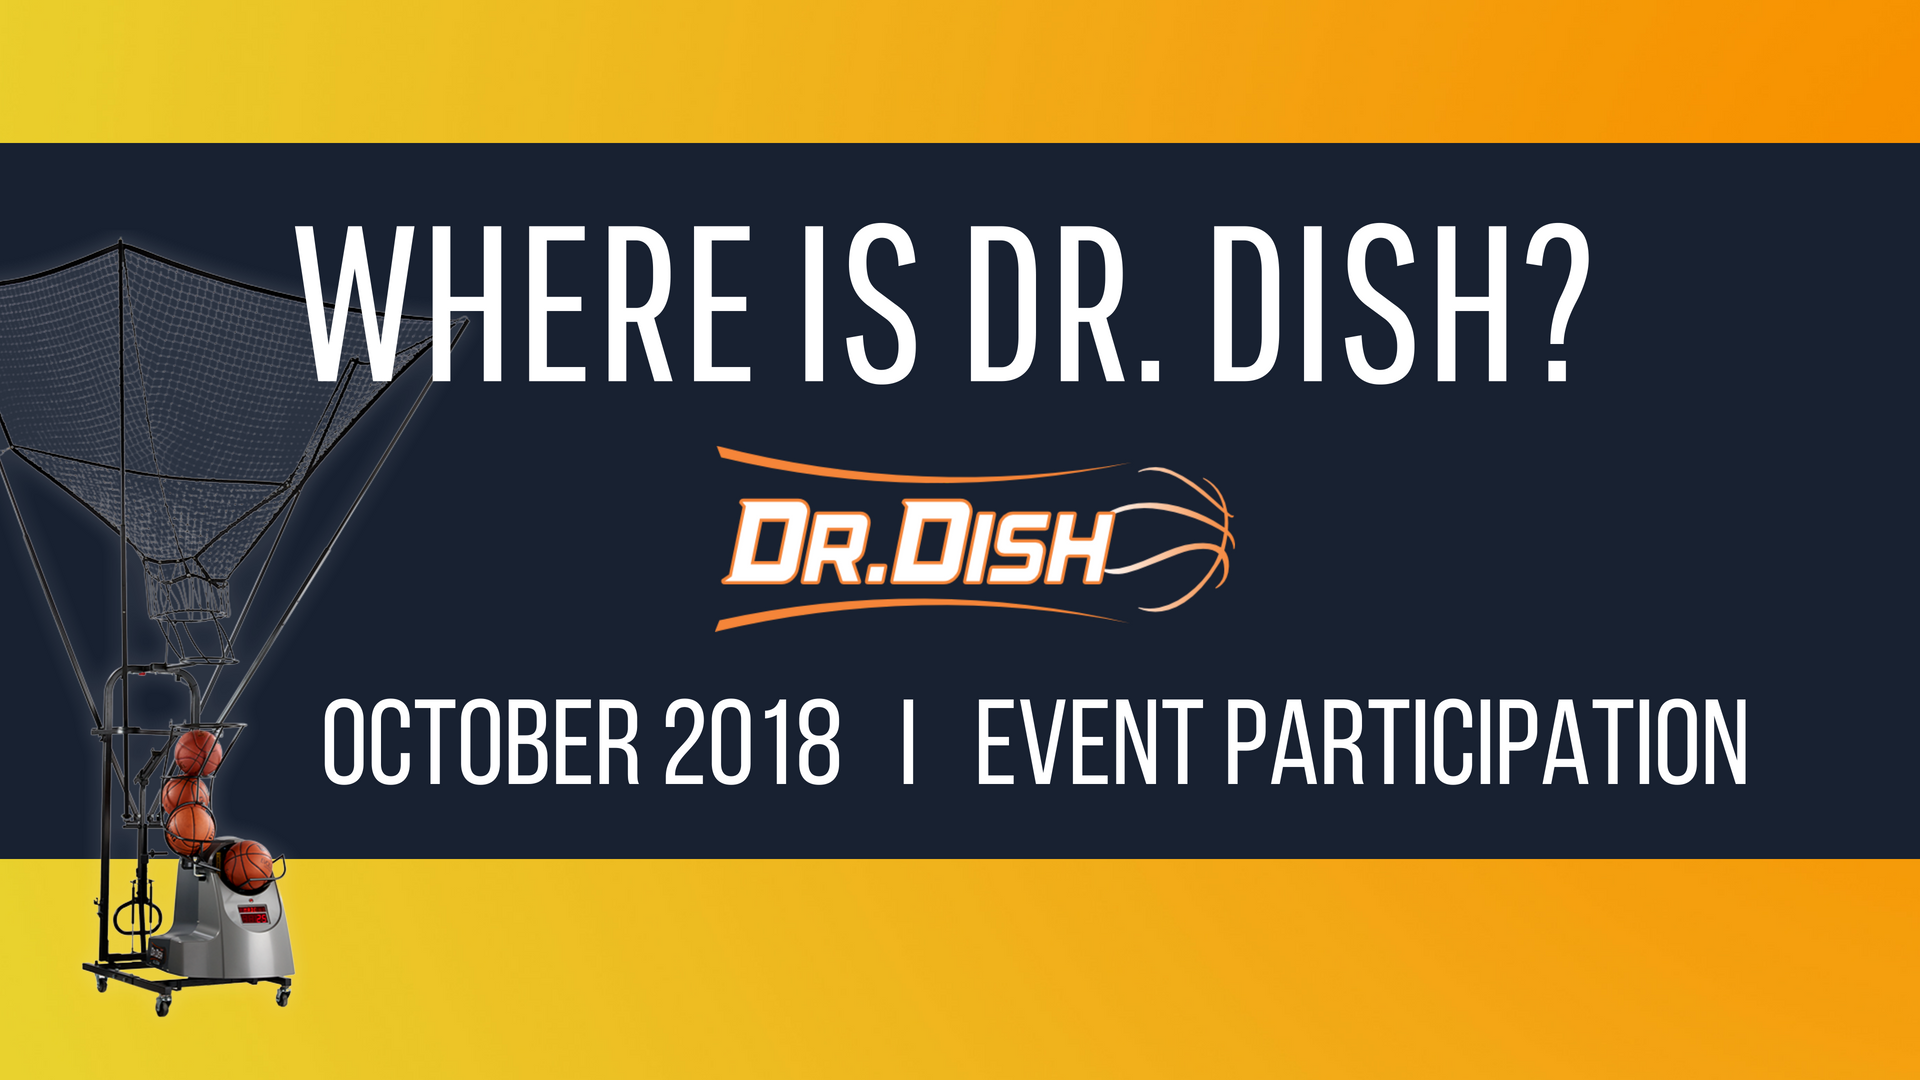 Where is Dr. Dish: October 2018